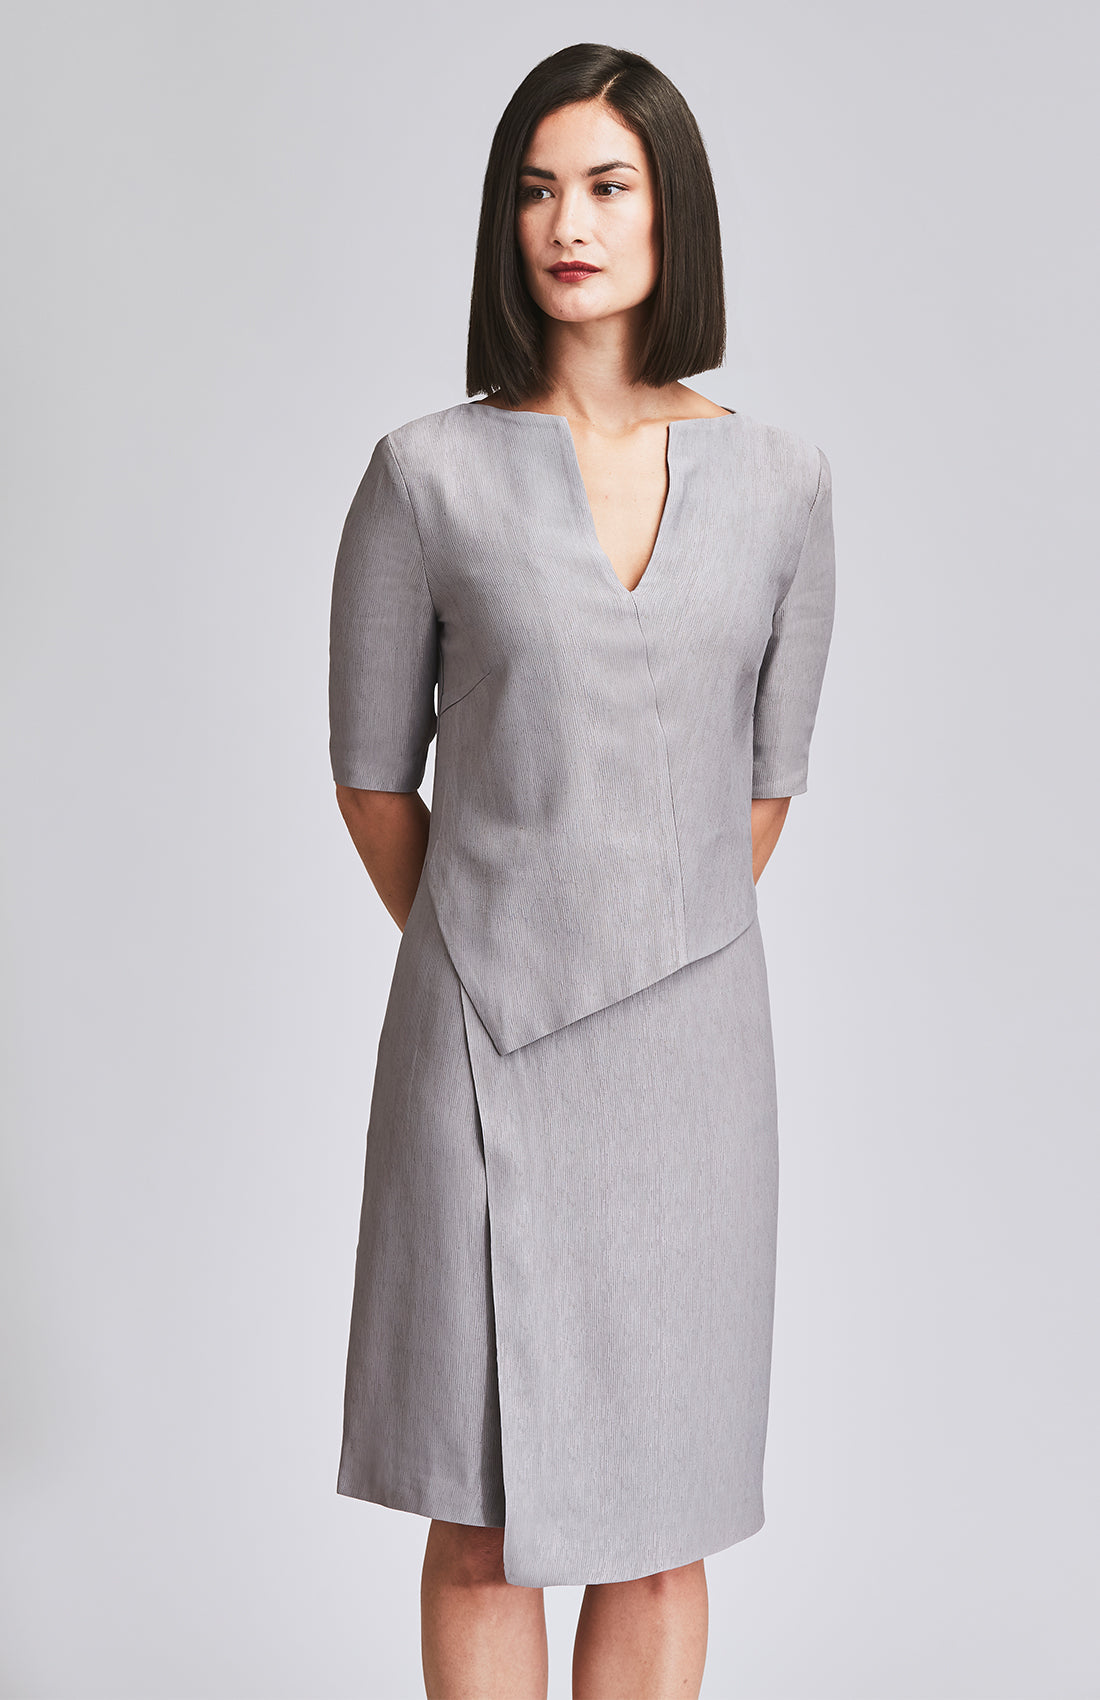 CERTAIN TEXTURED PEPLUM DRESS MINK GREY